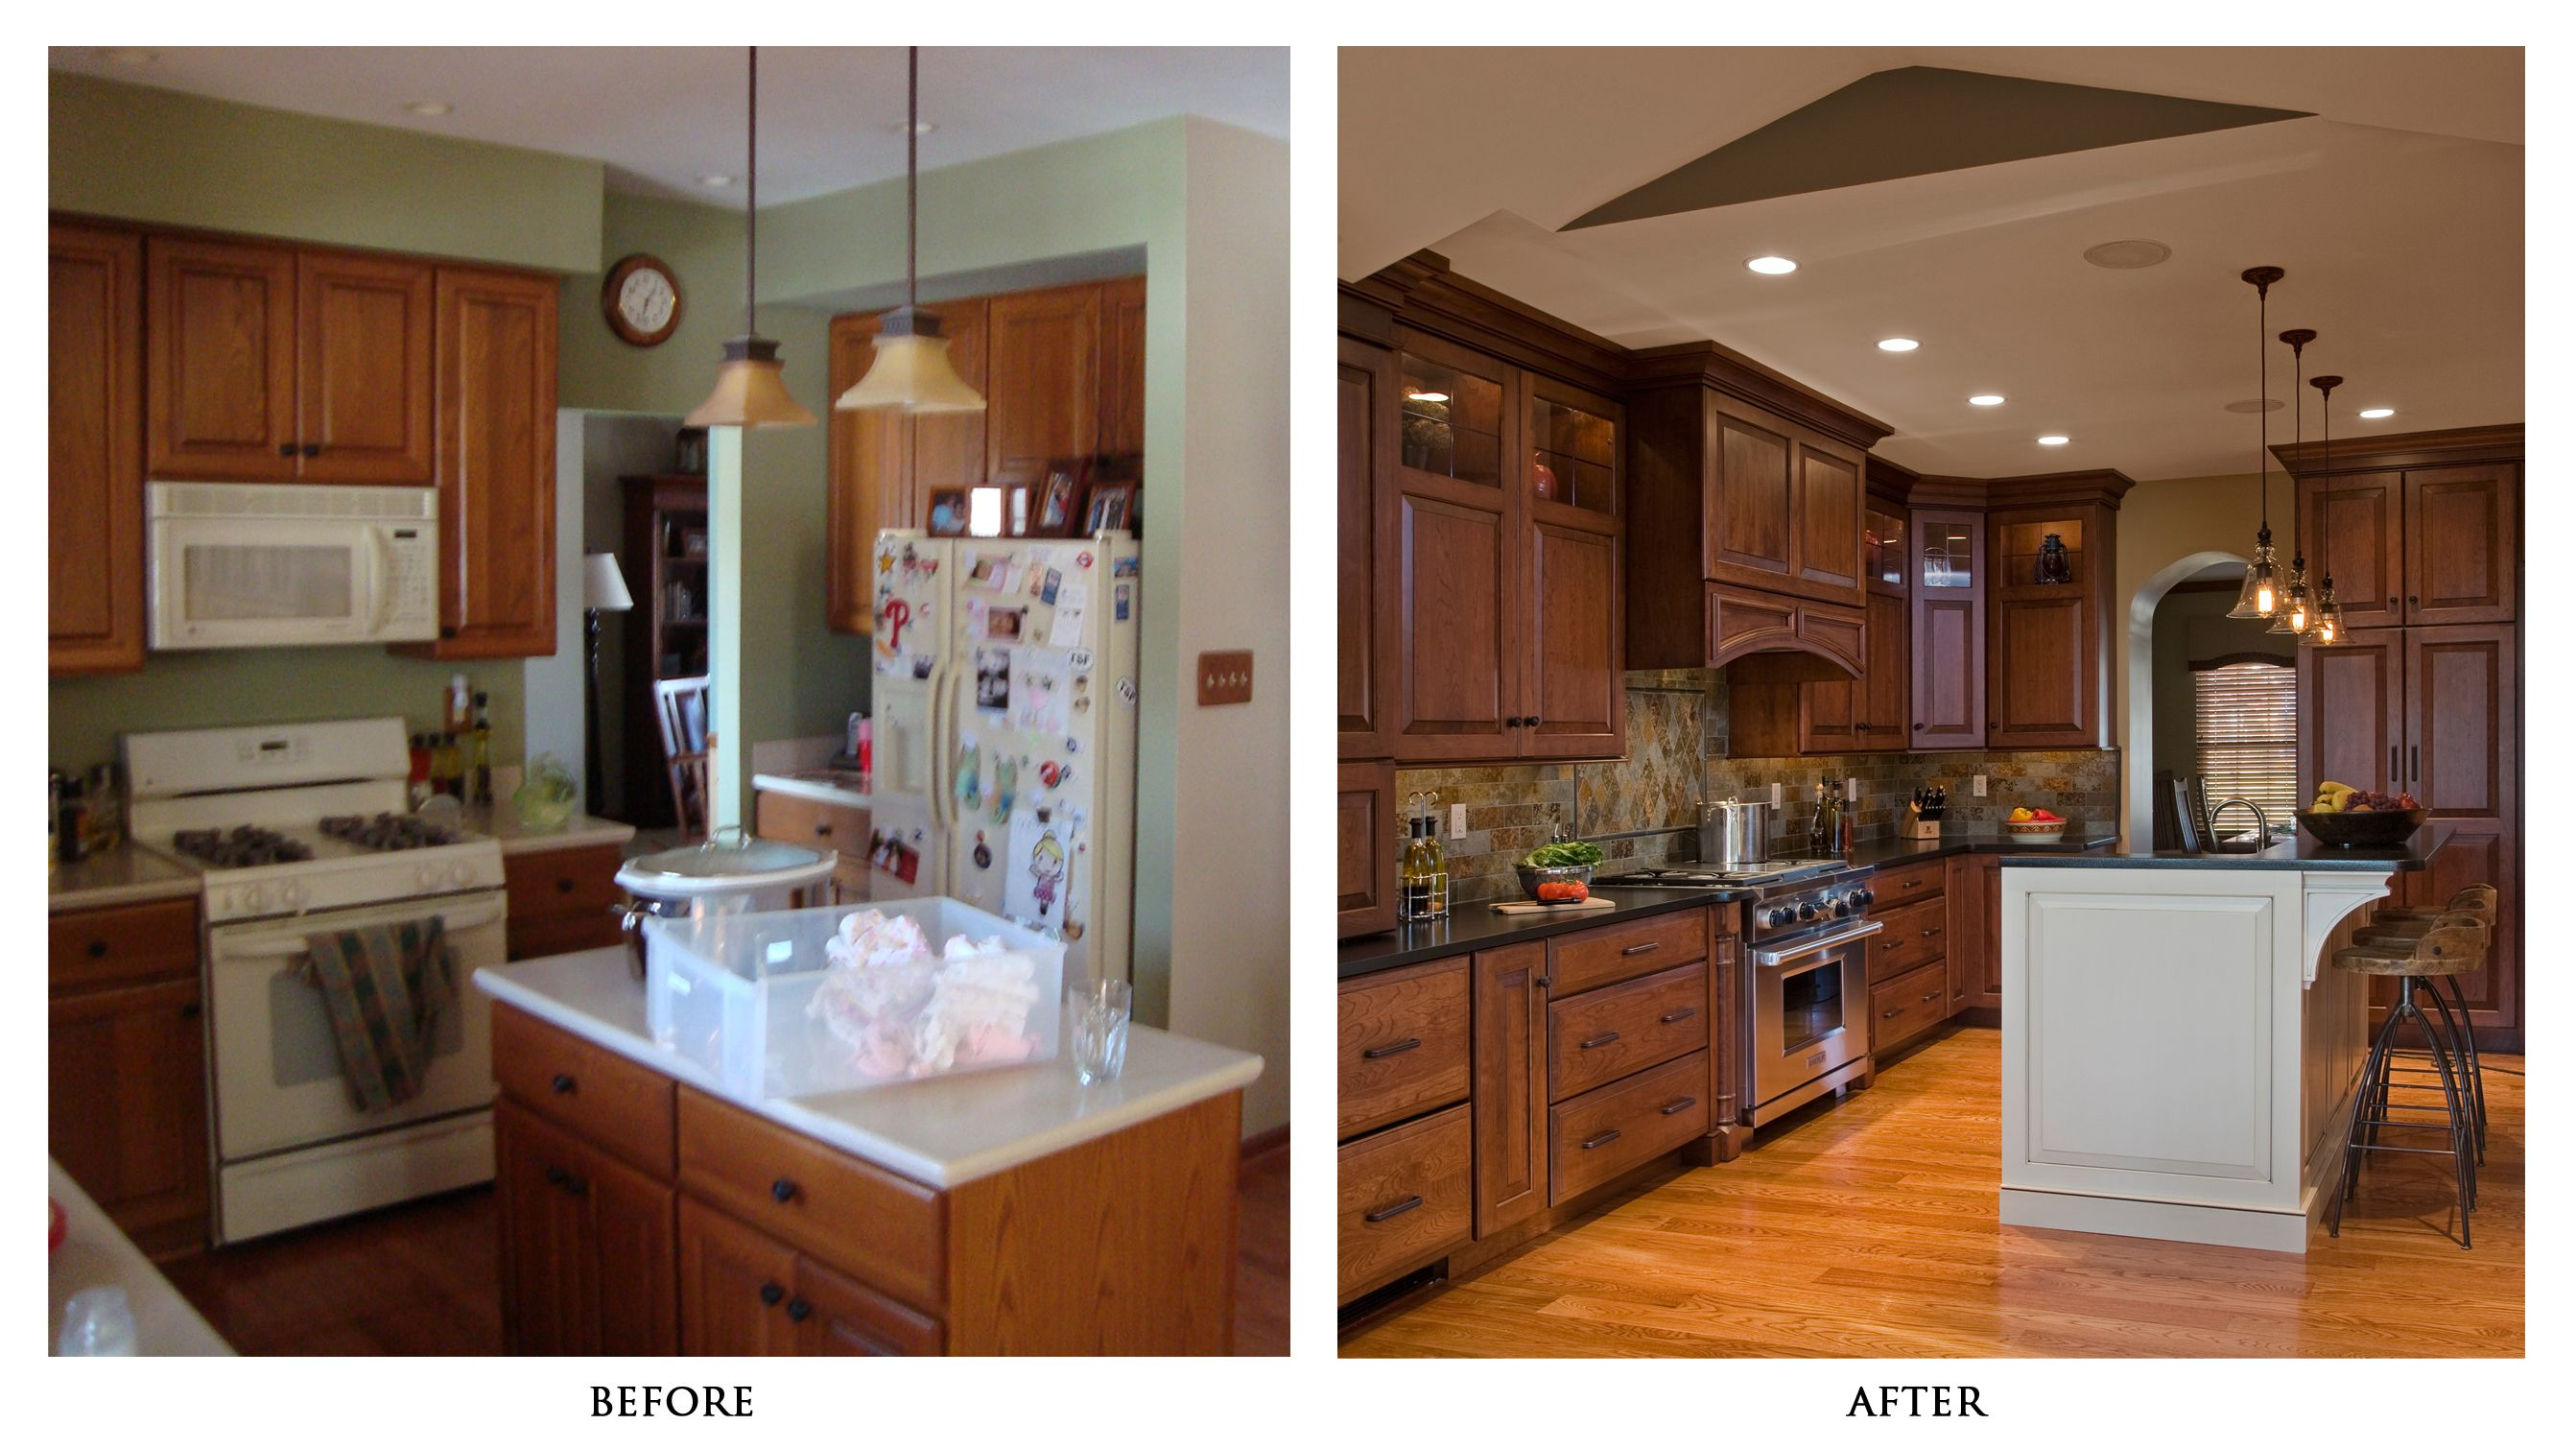 kitchen remodels before and after photos | Kitchen | Pinterest ...